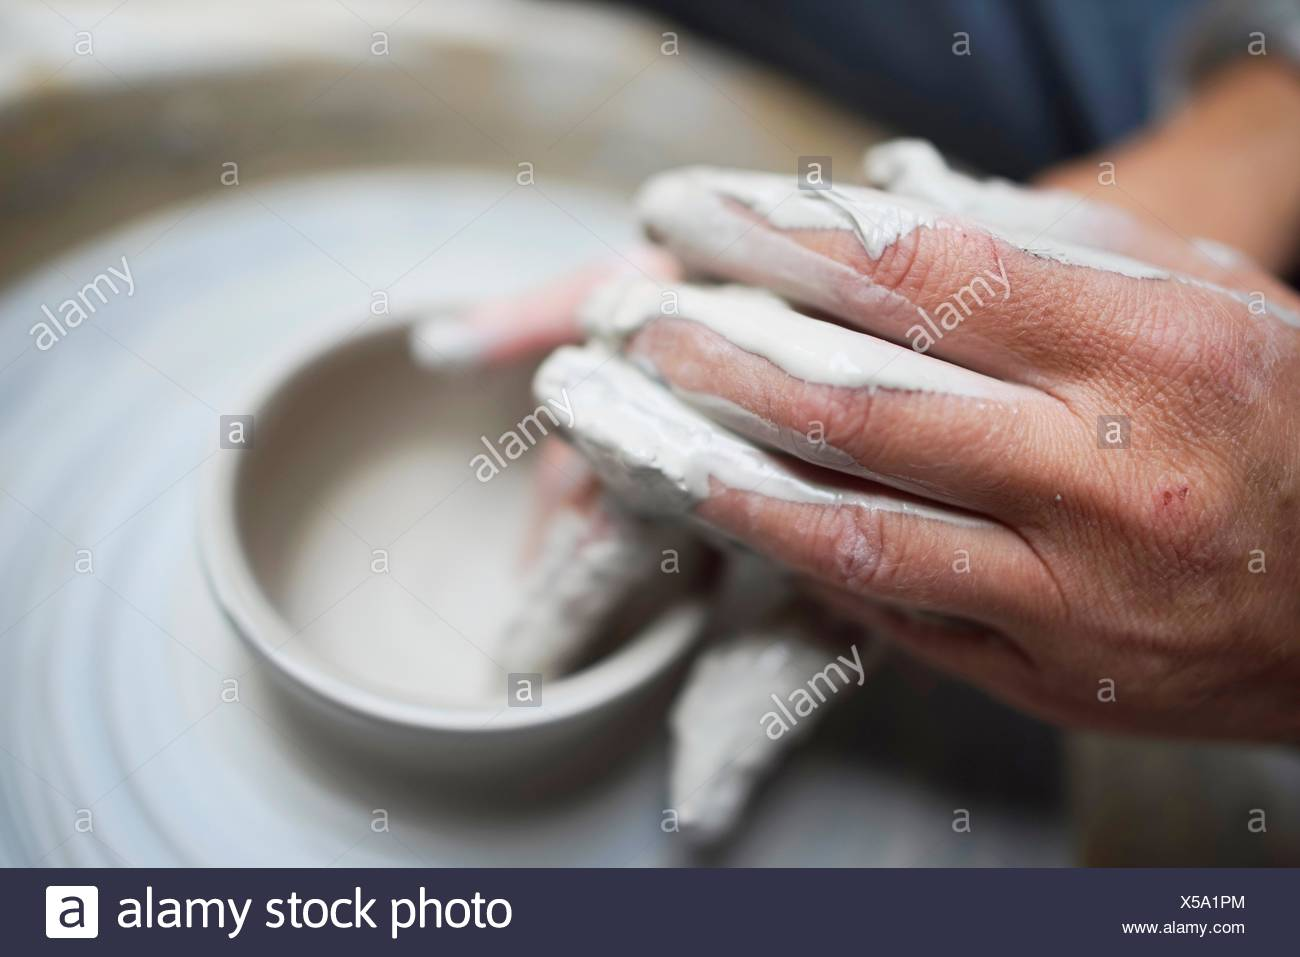 creative hands using clay to create pottery - Stock Image